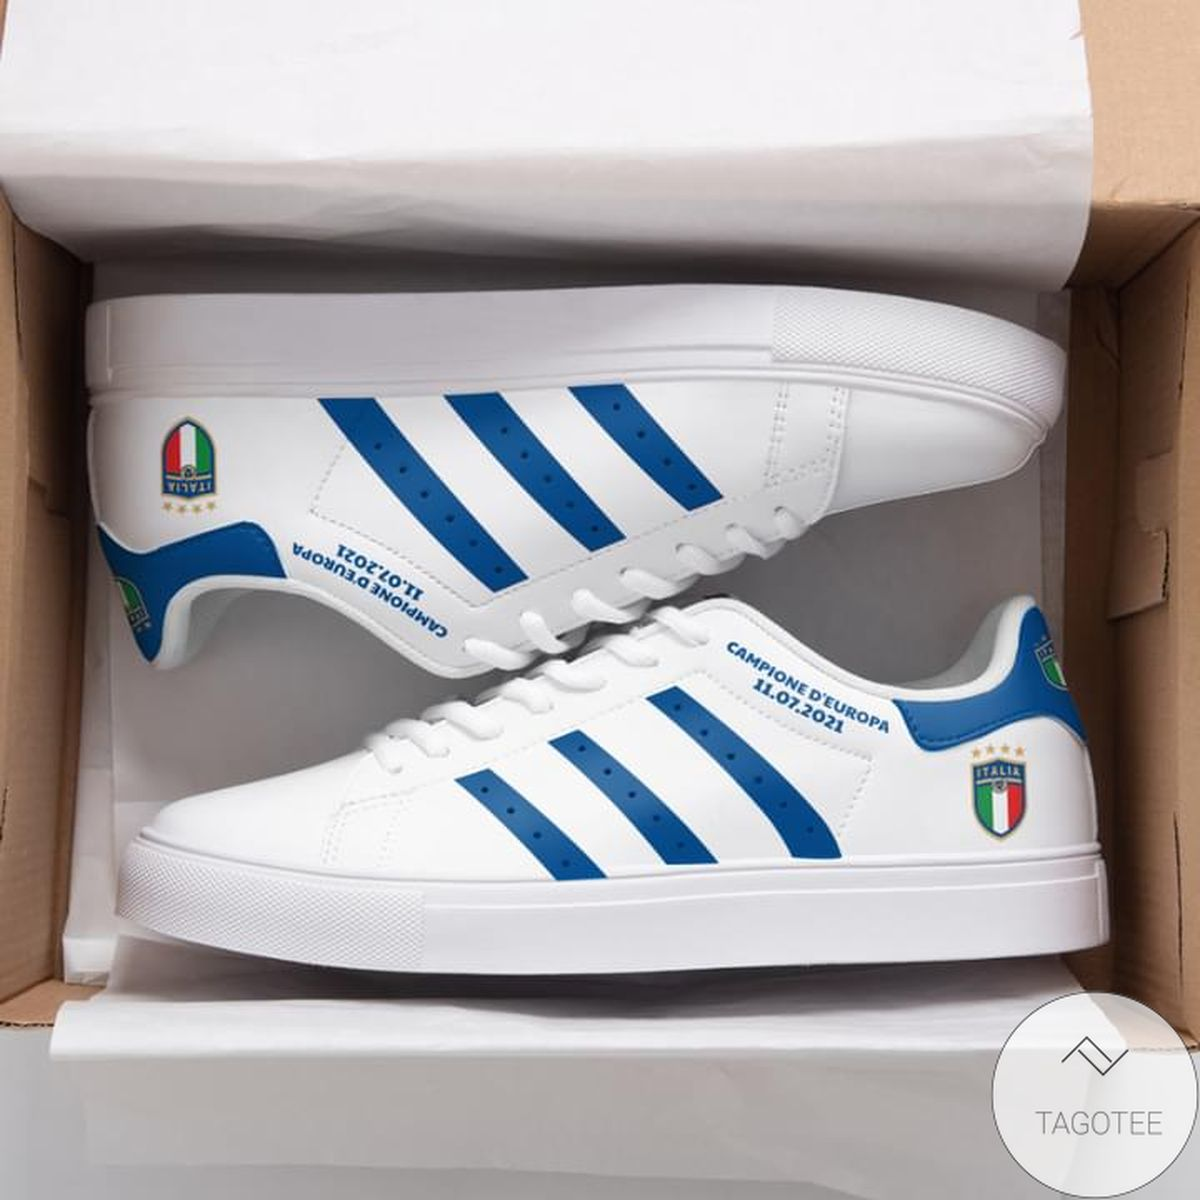 Campione D'europa White Stan Smith Shoes